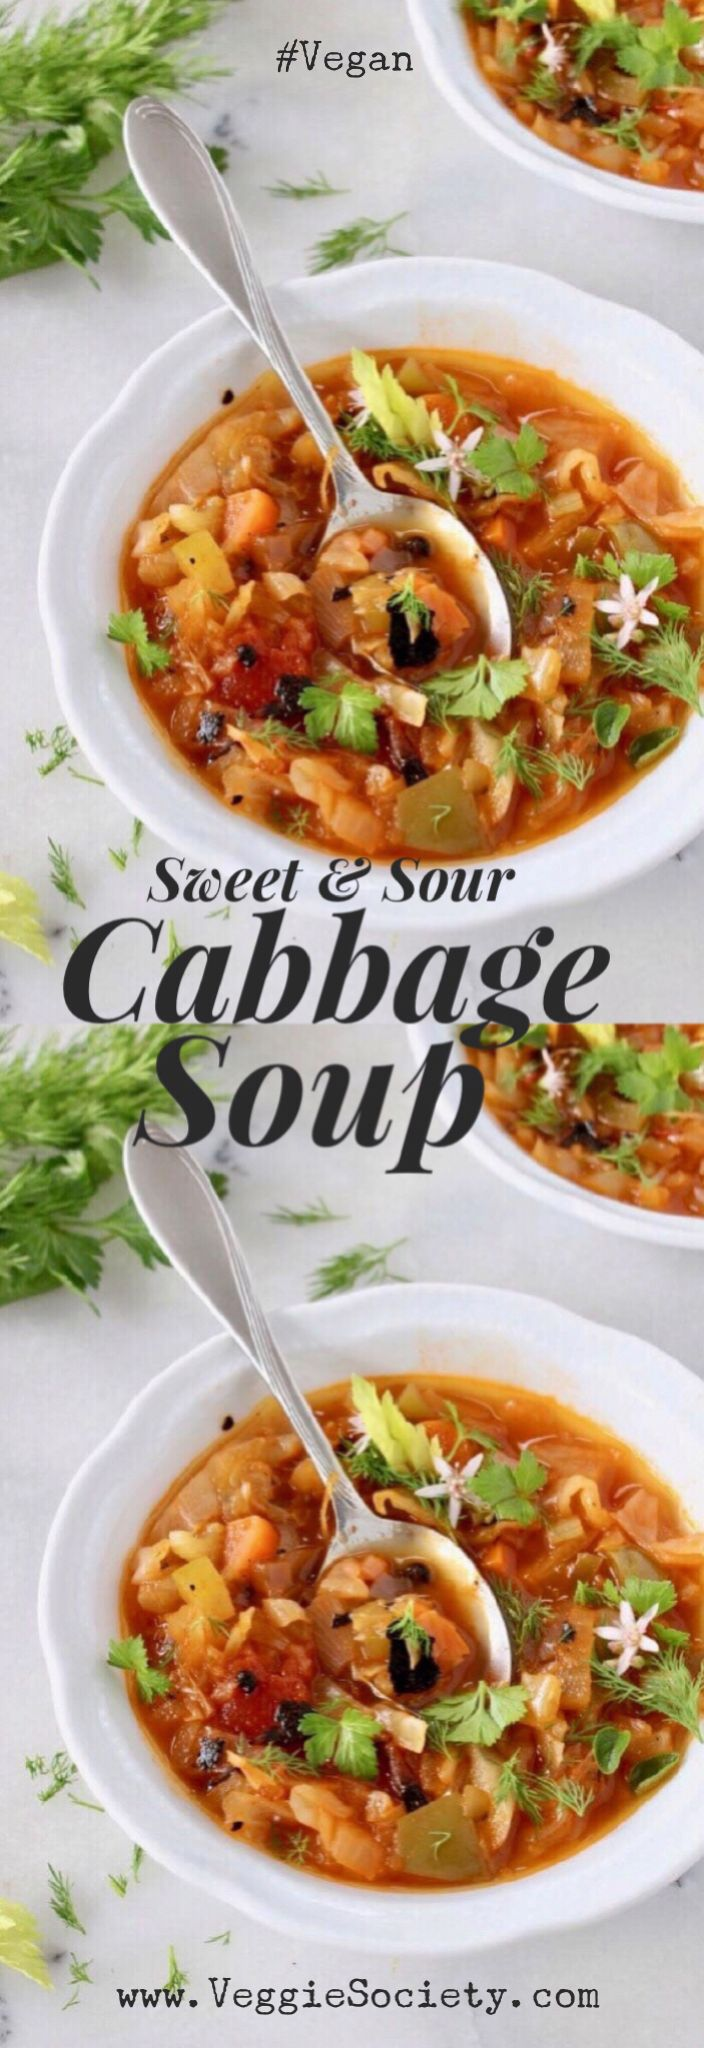 Simple Sweet and Sour Cabbage Soup Recipe with Fire Roasted Tomatoes and Smoked Paprika | VeggieSociety.com #vegan #wfpb #soup #cabbage